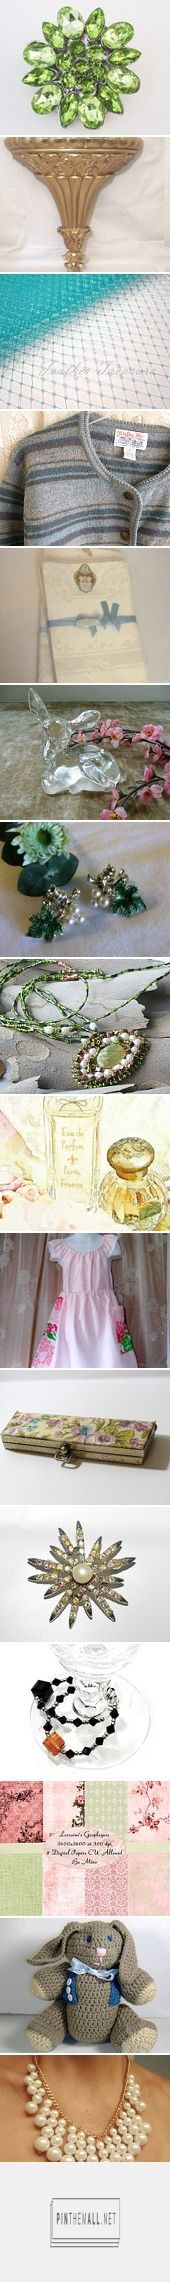 Forever and Ever by Sandy Stark on Etsy - created via https://pinthemall.net